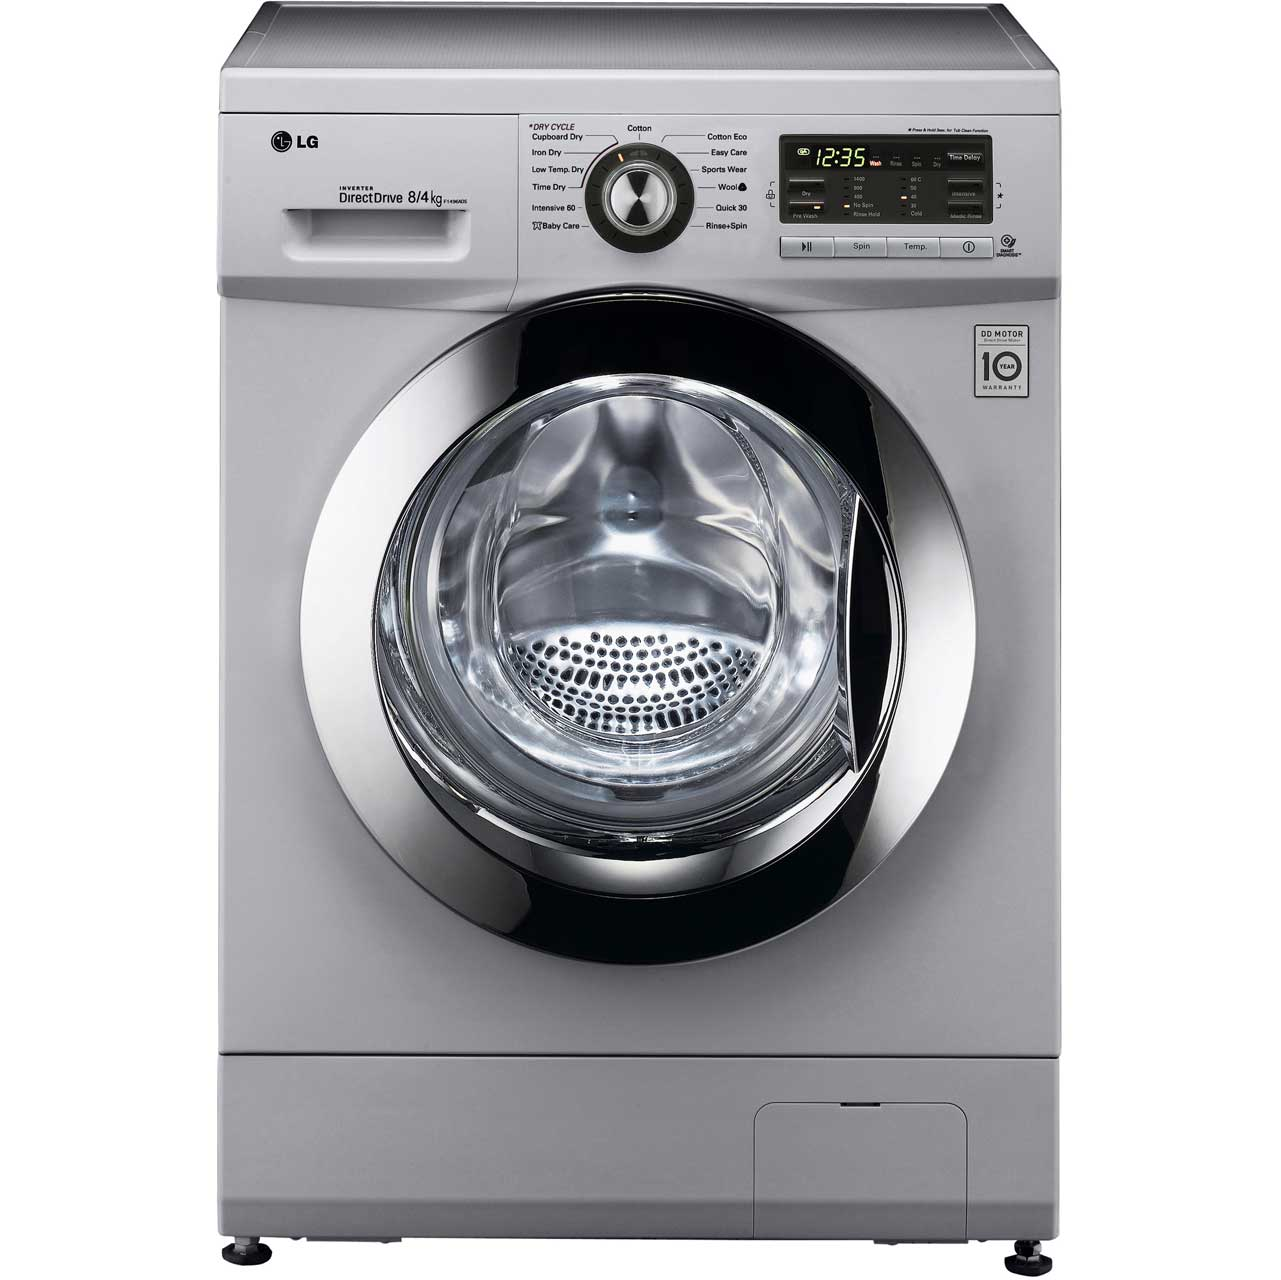 LG 8Kg Direct Drive FH496AD5 8Kg / 4Kg Washer Dryer with 1400 rpm - Silver